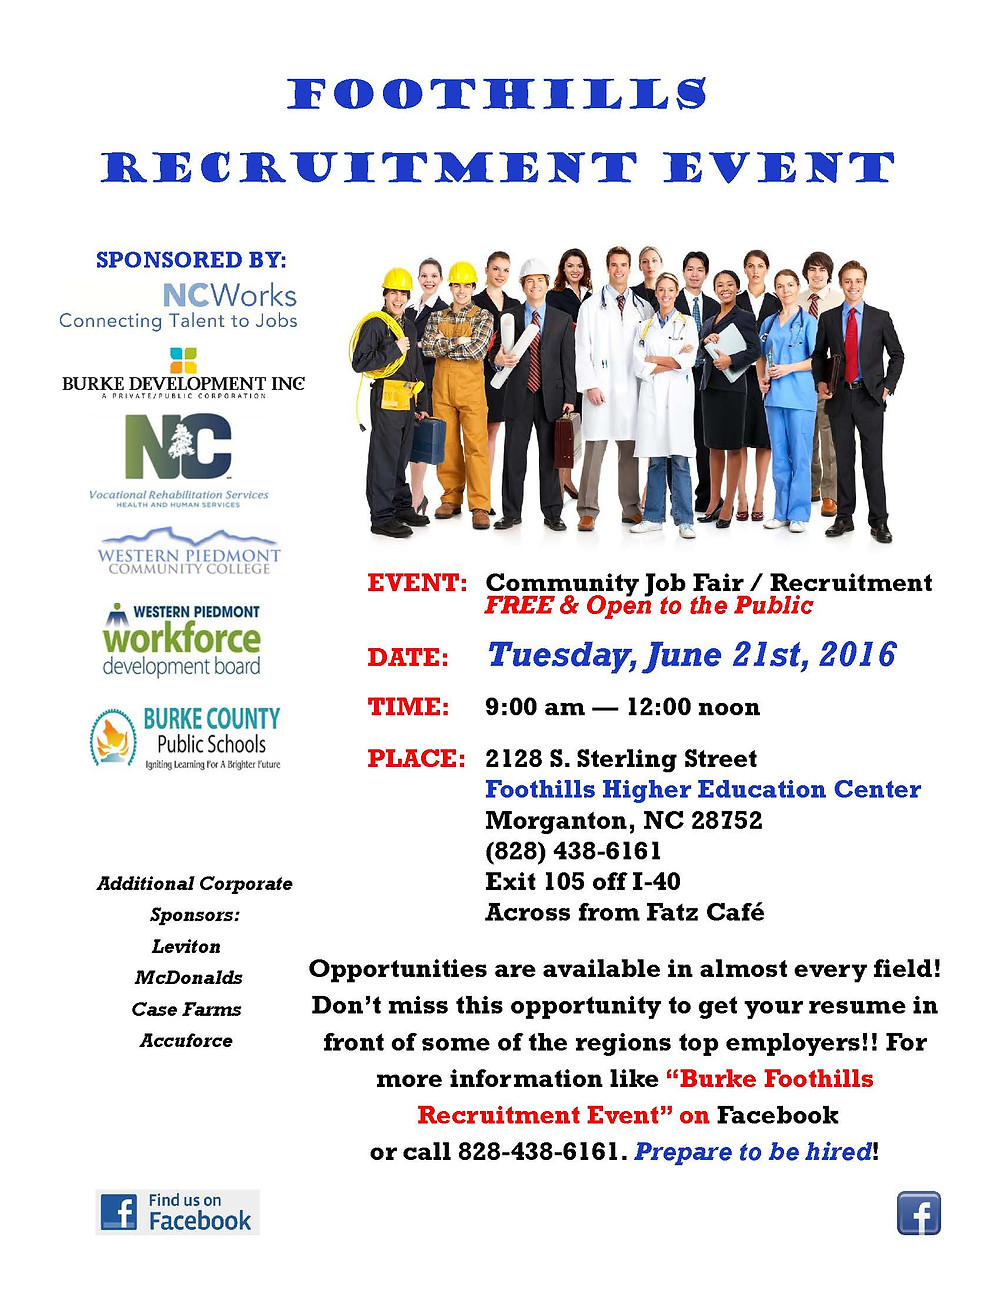 Foothills Recruitment Event Flyer